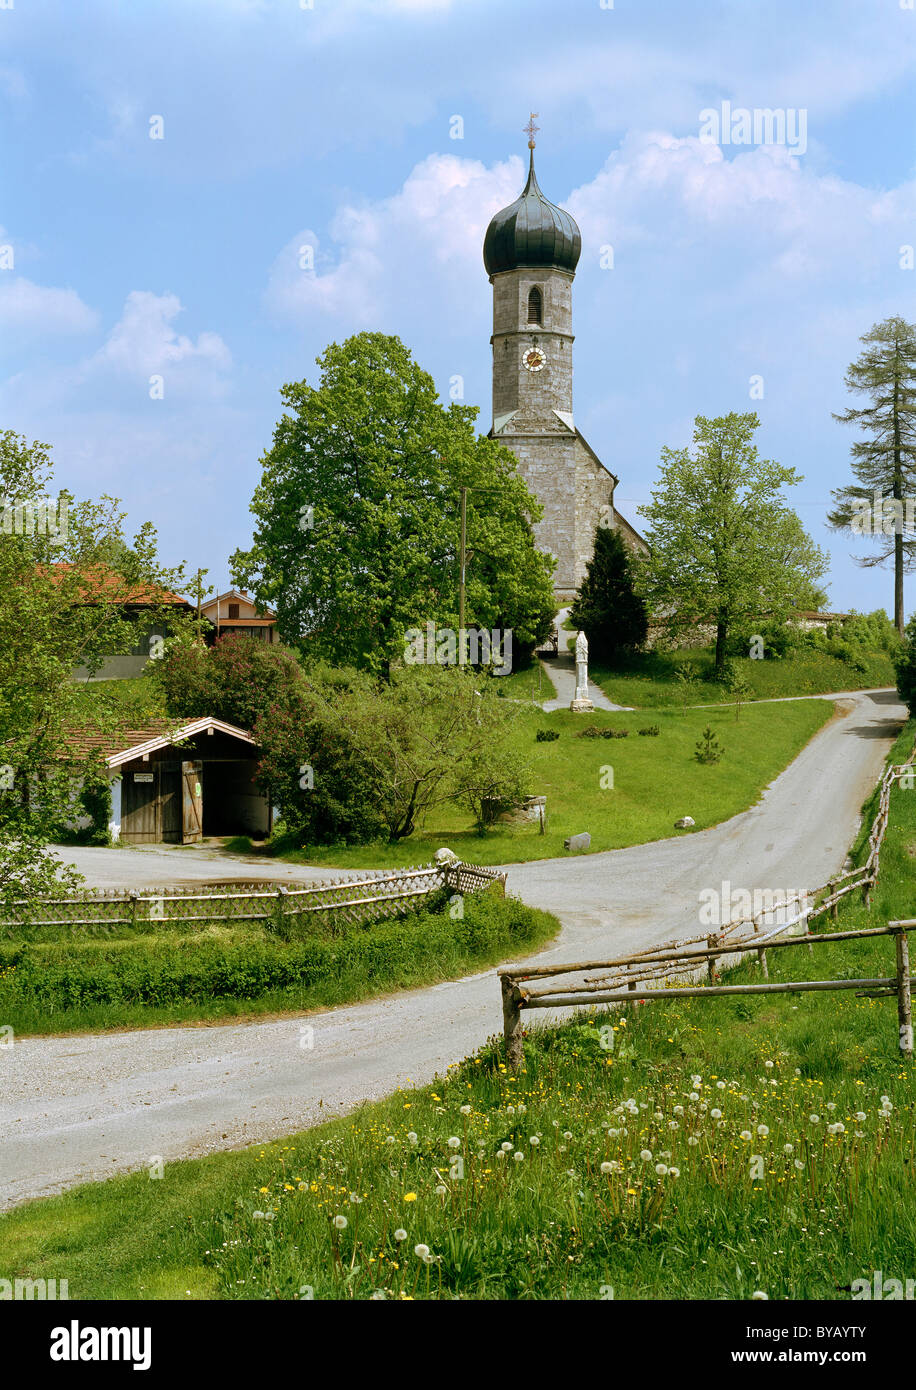 St. Magdalena Chapel of Ease, Lochen, Dietramszell, Upper Bavaria, Bavaria, Germany, Europe - Stock Image